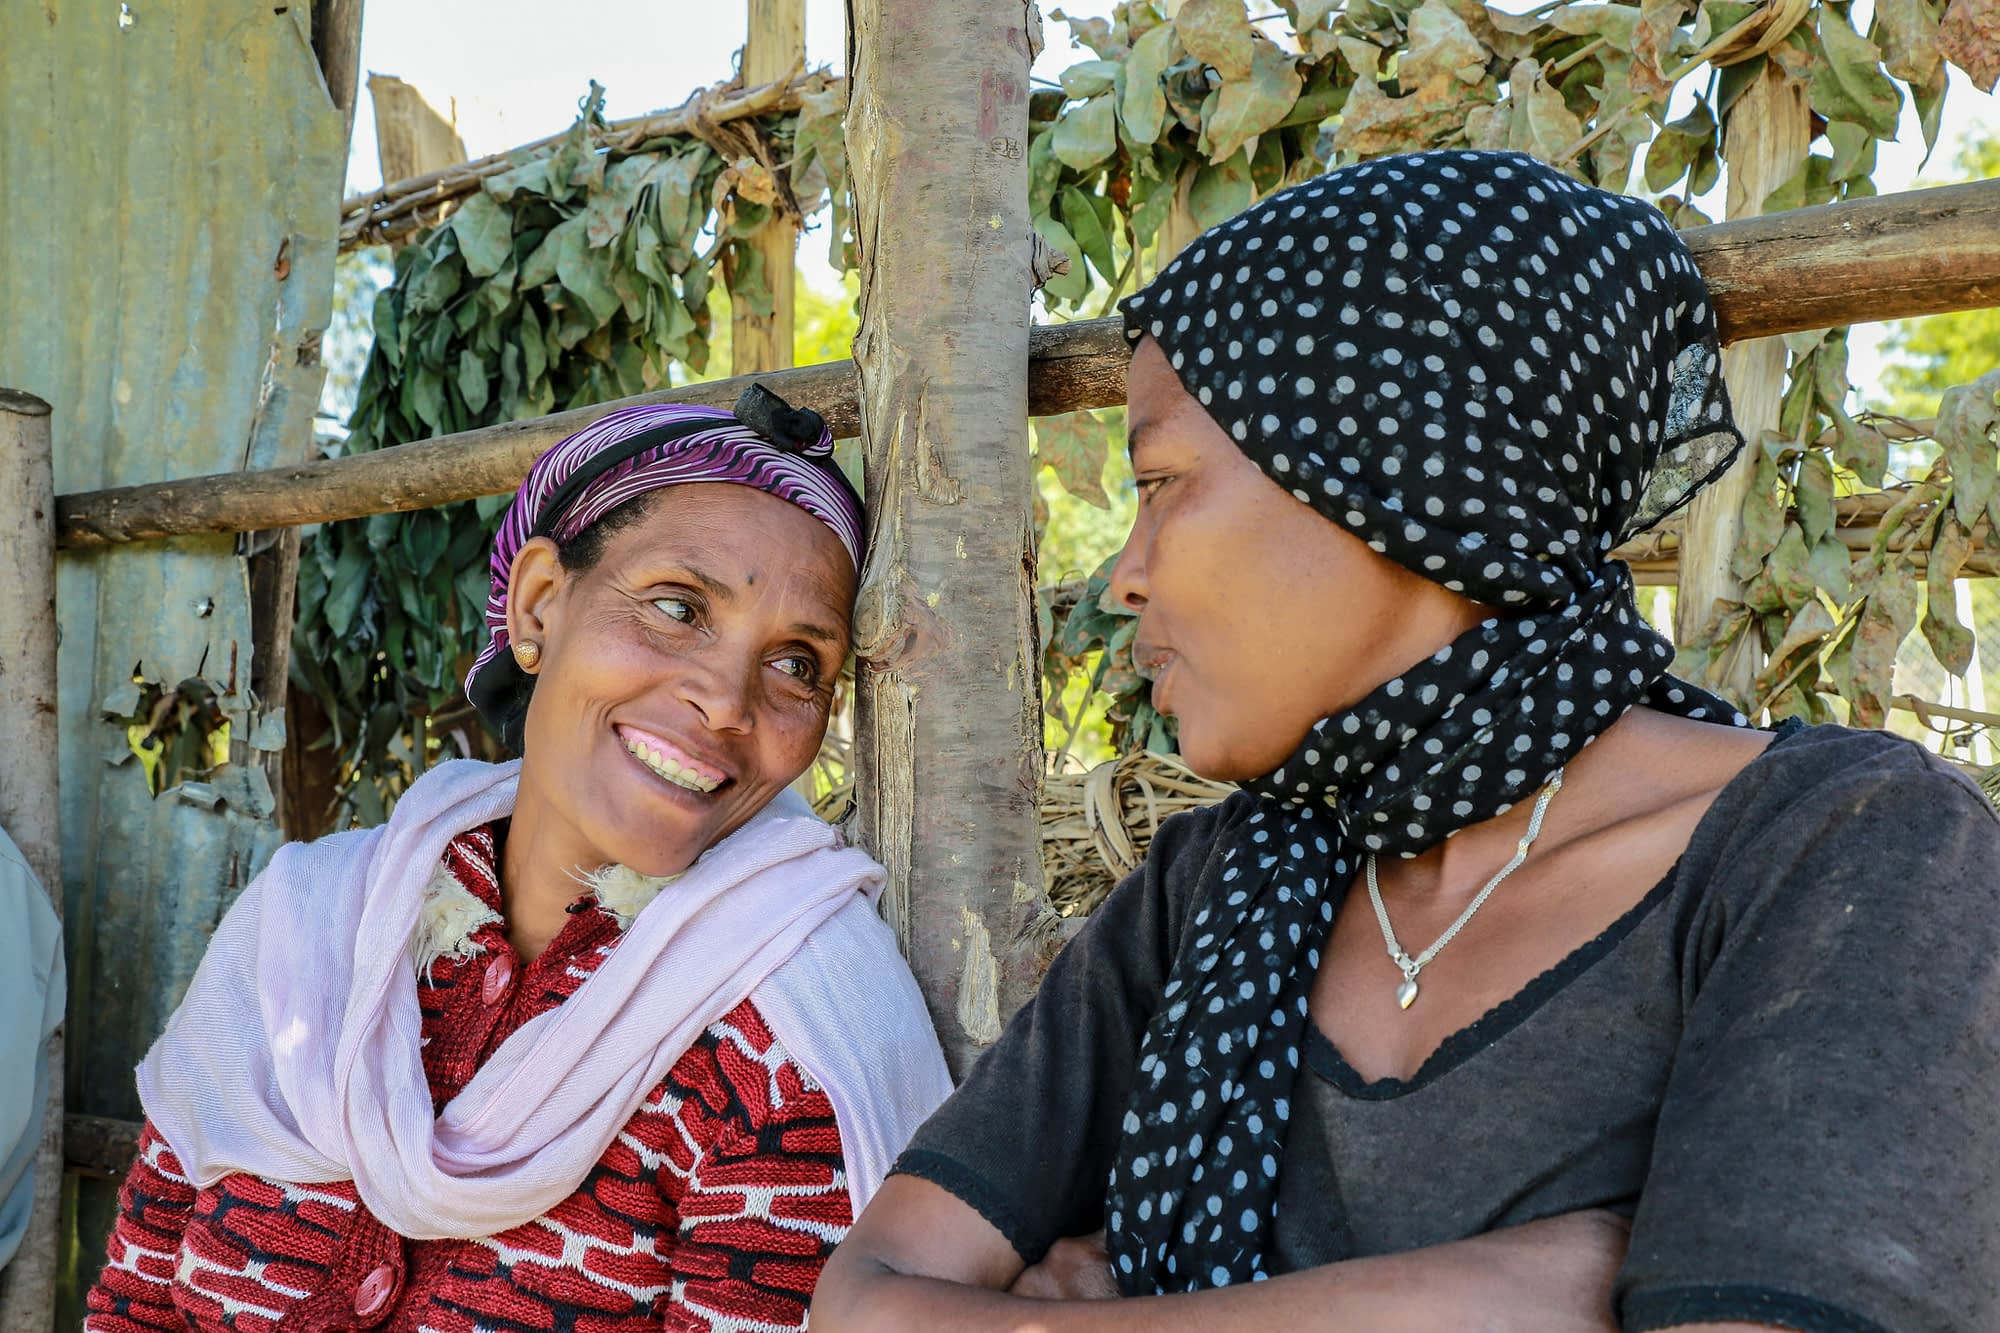 """Amarech Desta (left) is the chairwoman of Tembo Awtena, a womens' seed producer association in the Angacha district of Ethiopia's Southern Nations, Nationalities, and Peoples' Region (SNNP). As part of the Wheat Seed Scaling project, the group received early-generation seed and a seed thresher from CIMMYT. """"In 2016 we sold more than $7,400 worth of seed,"""" Desta said. """"Our success attracted 30 additional women farmers in 2017, bringing the total membership to 133."""" (Photo: Apollo Habtamu/CIMMYT)"""